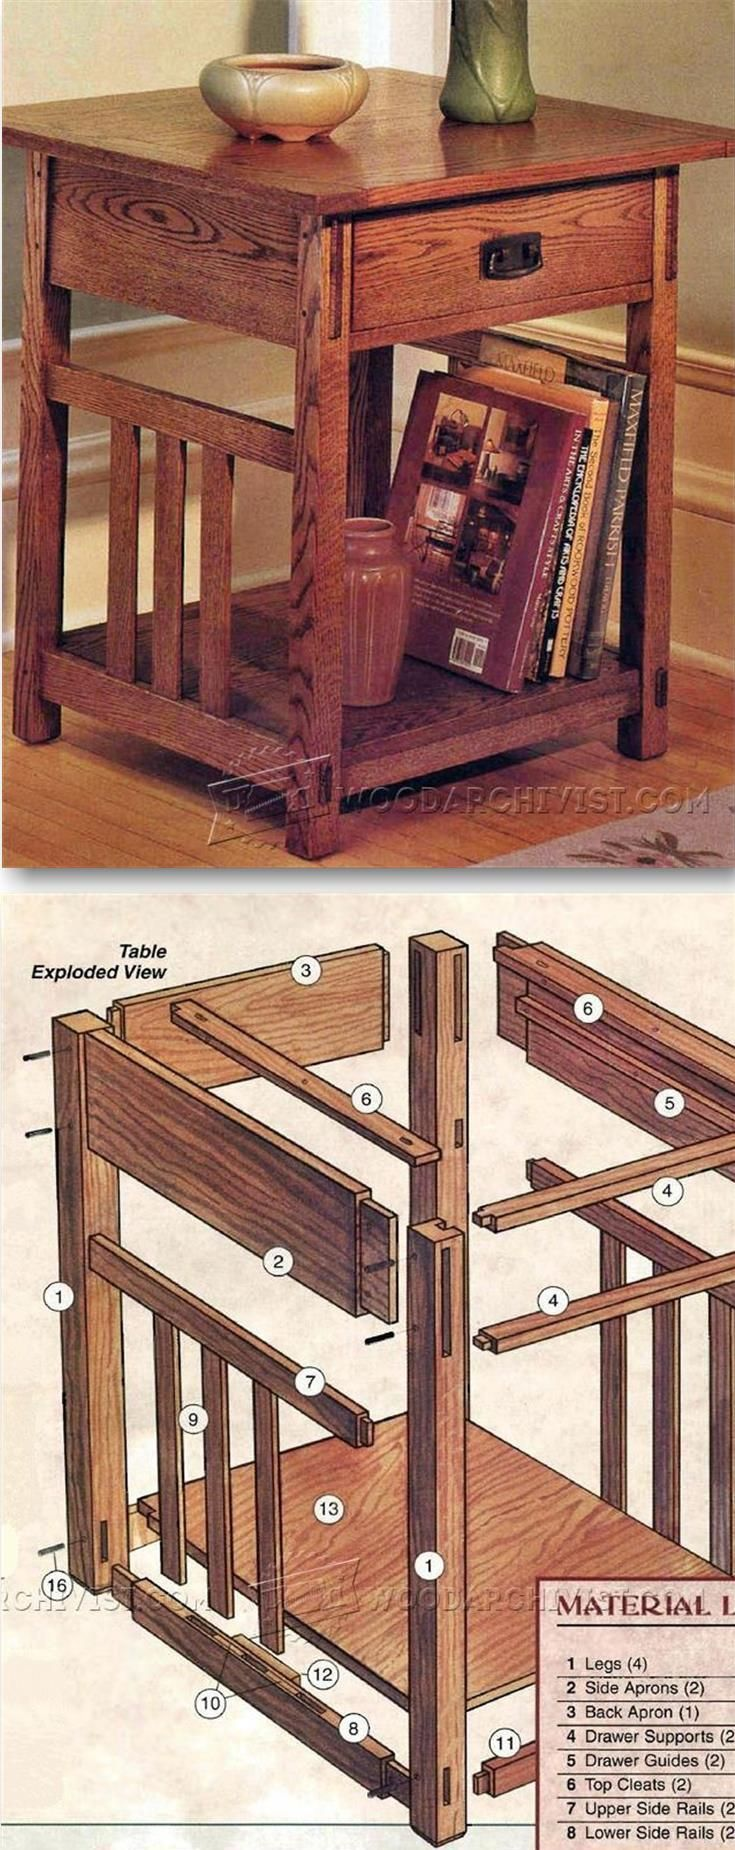 Arts and crafts furniture plans - Arts Crafts End Table Plans Furniture Plans And Projects Woodarchivist Com